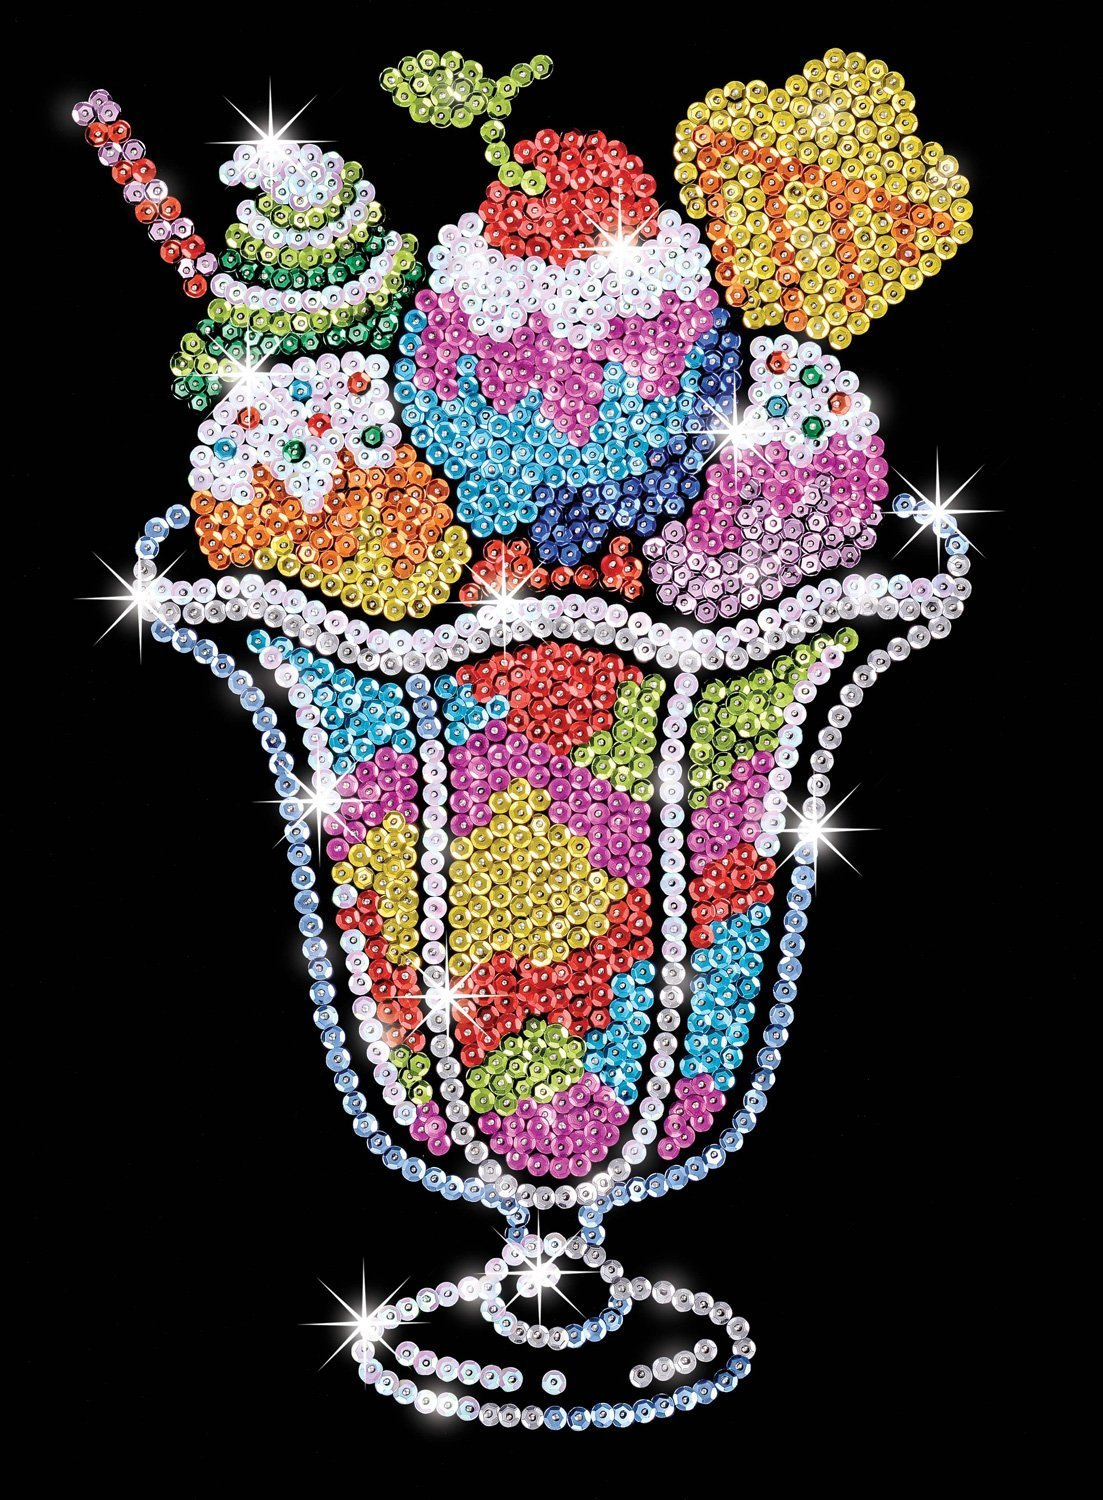 Sequin Art - Ice Cream image